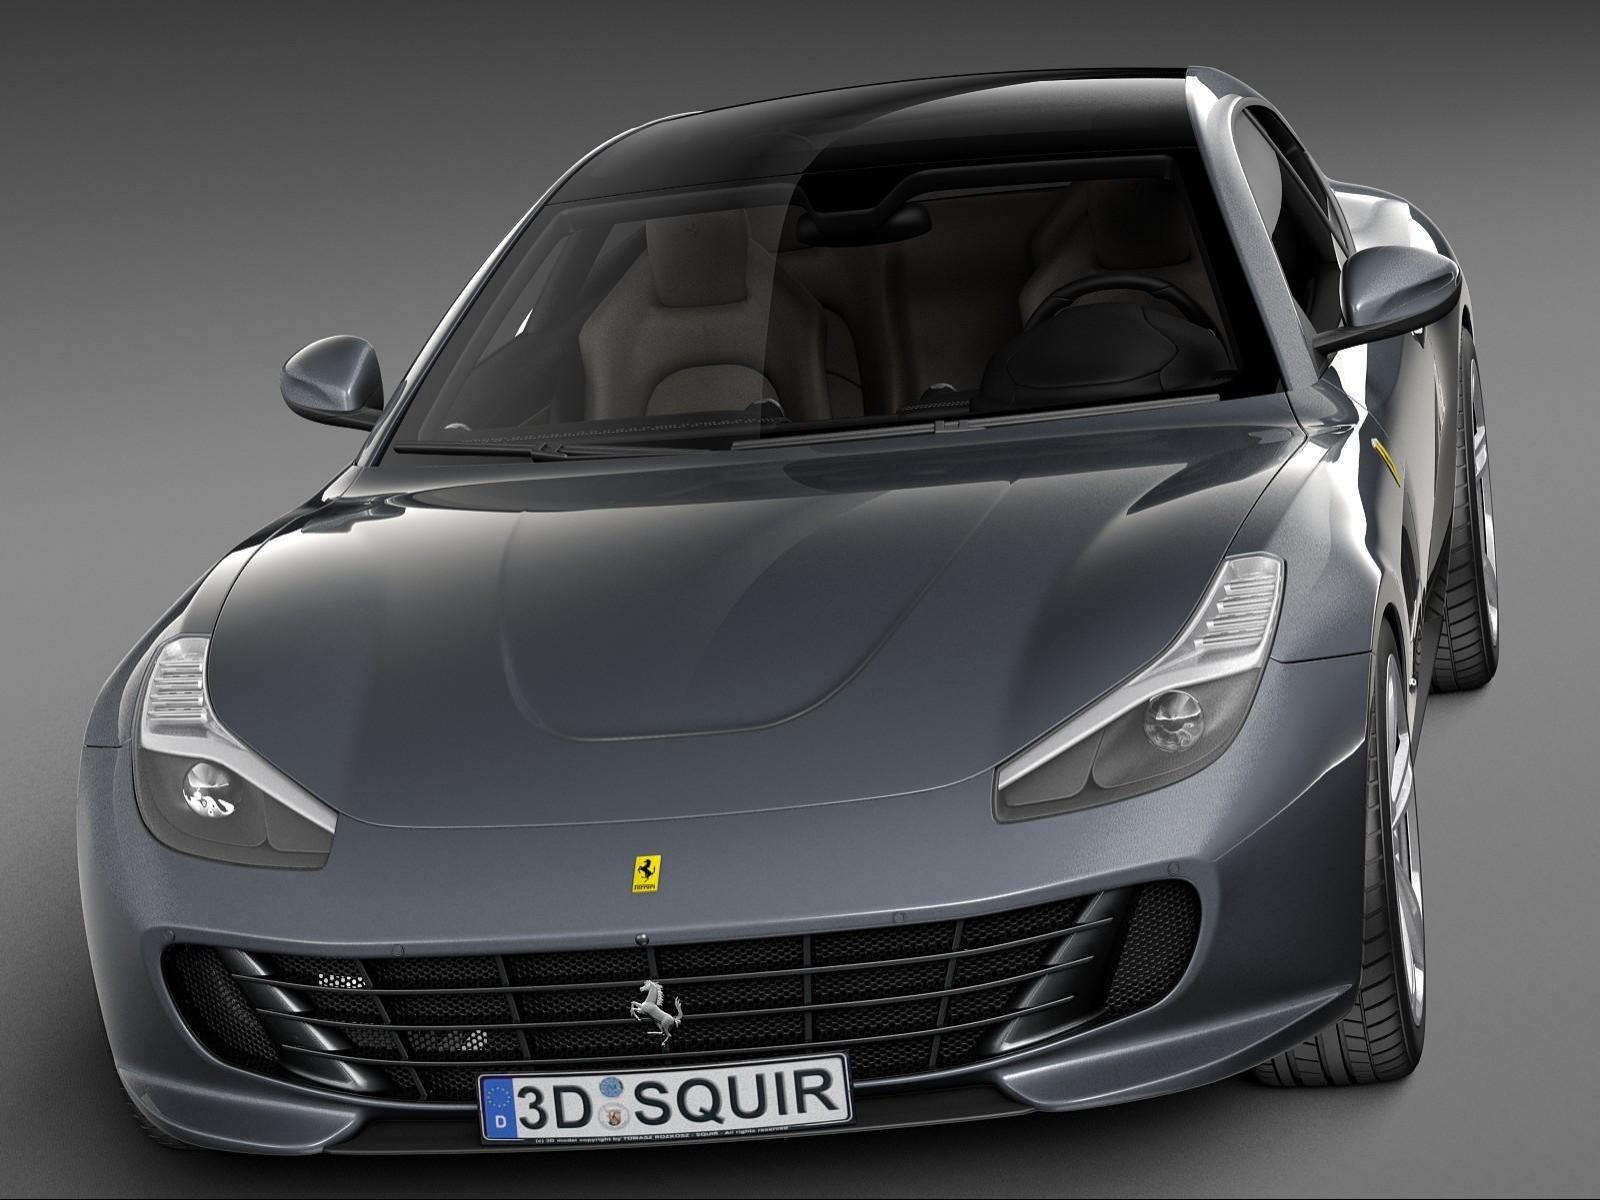 features demand immortality to for engined race may premiere best stunning at the maranellos new high but newer film kept ferraris prices insurance look gallery has ferrari mid italia not as culture by car finest